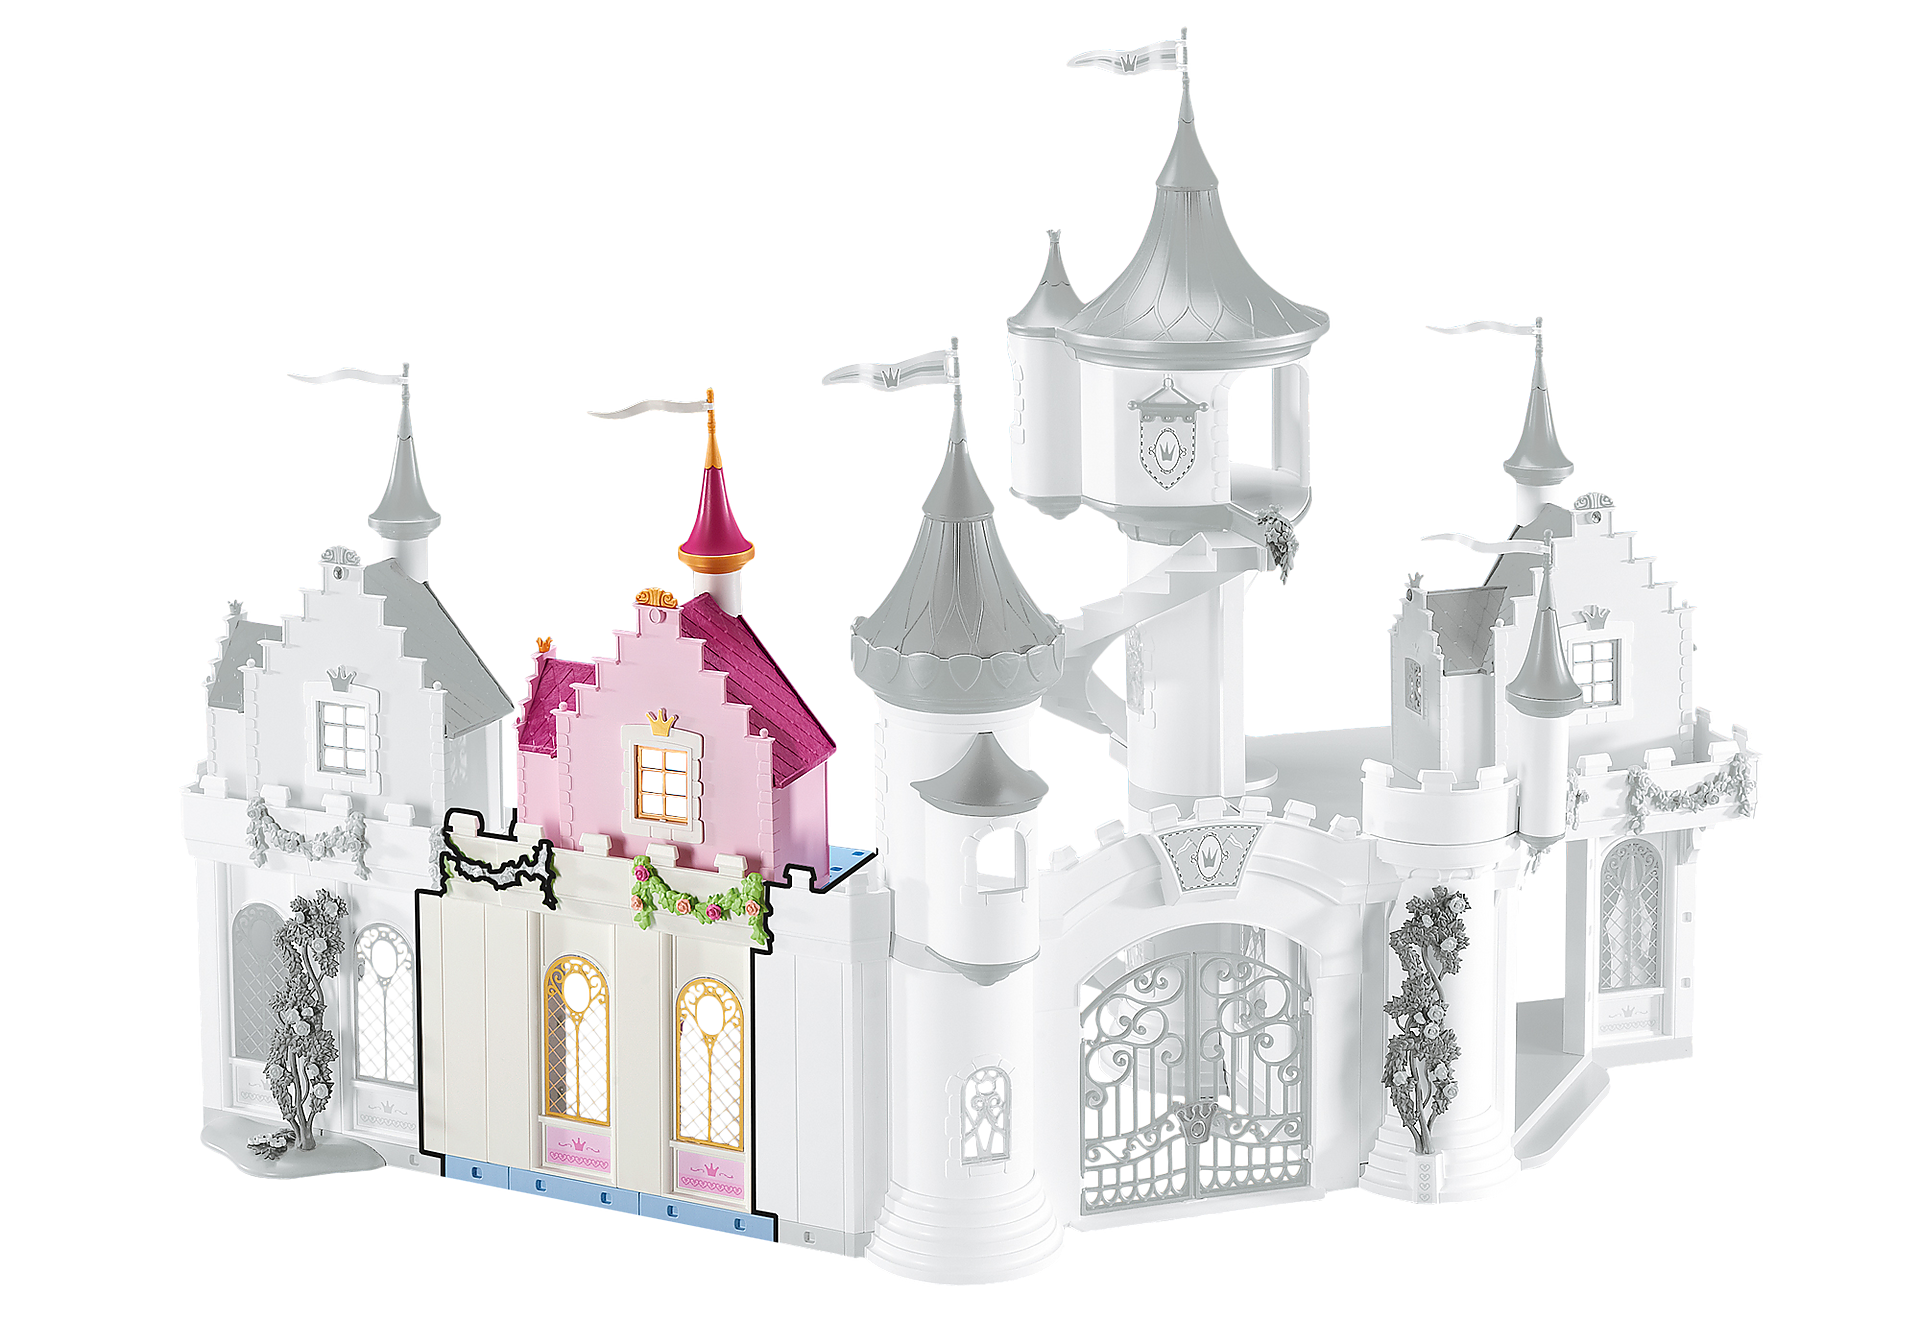 http://media.playmobil.com/i/playmobil/6519_product_detail/Façade d'extension pour le Grand Château de Princesse